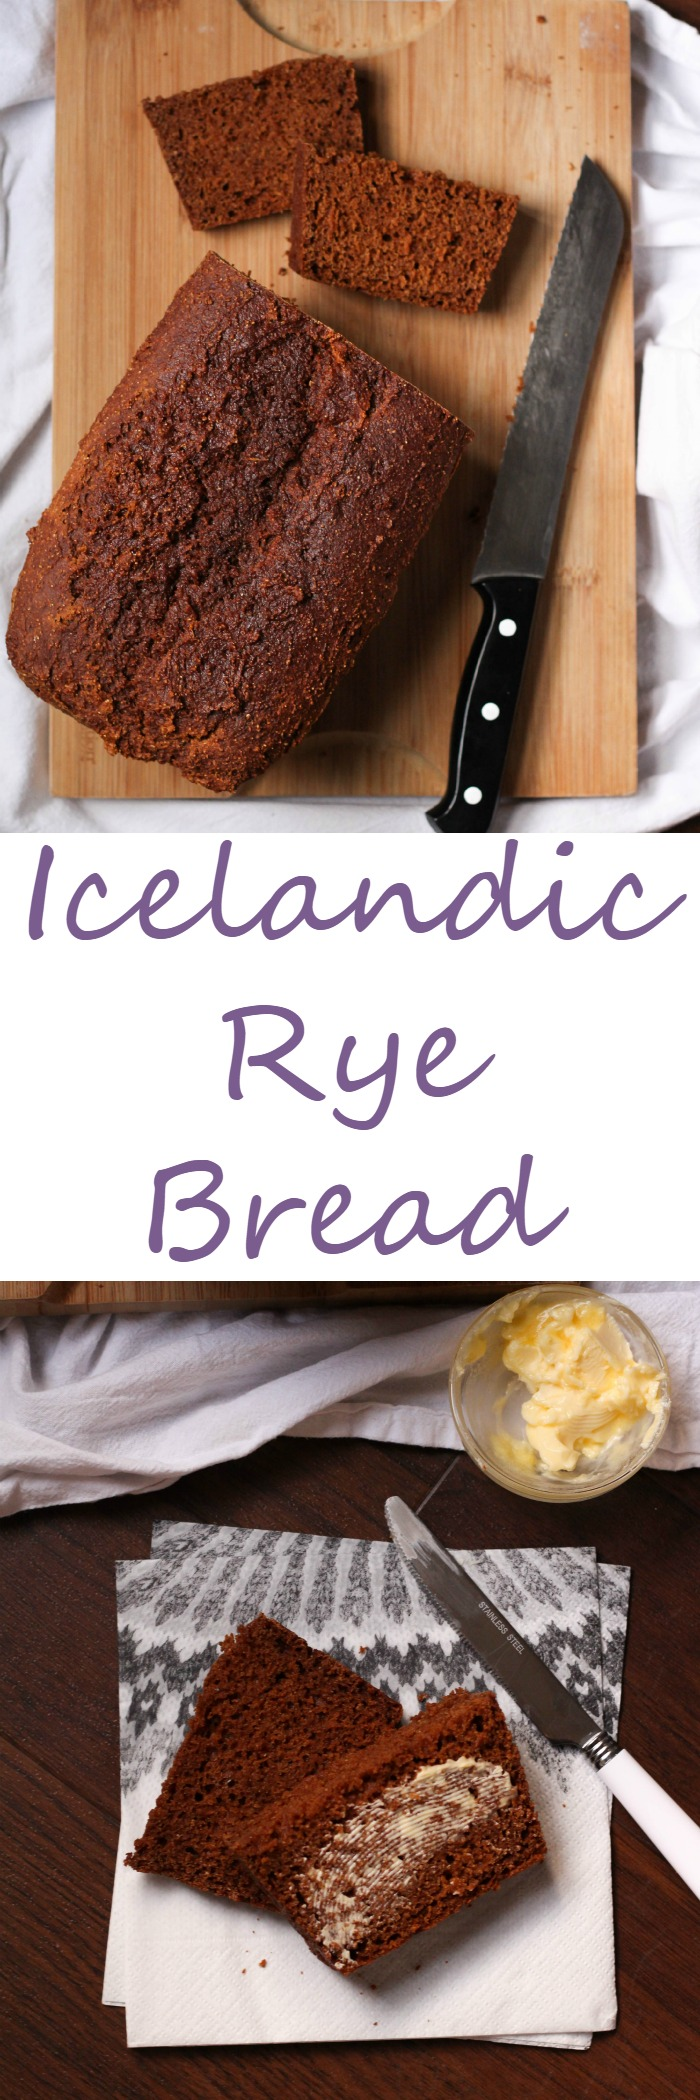 Icelandic Rye Bread is sweet, hearty, and delicious!